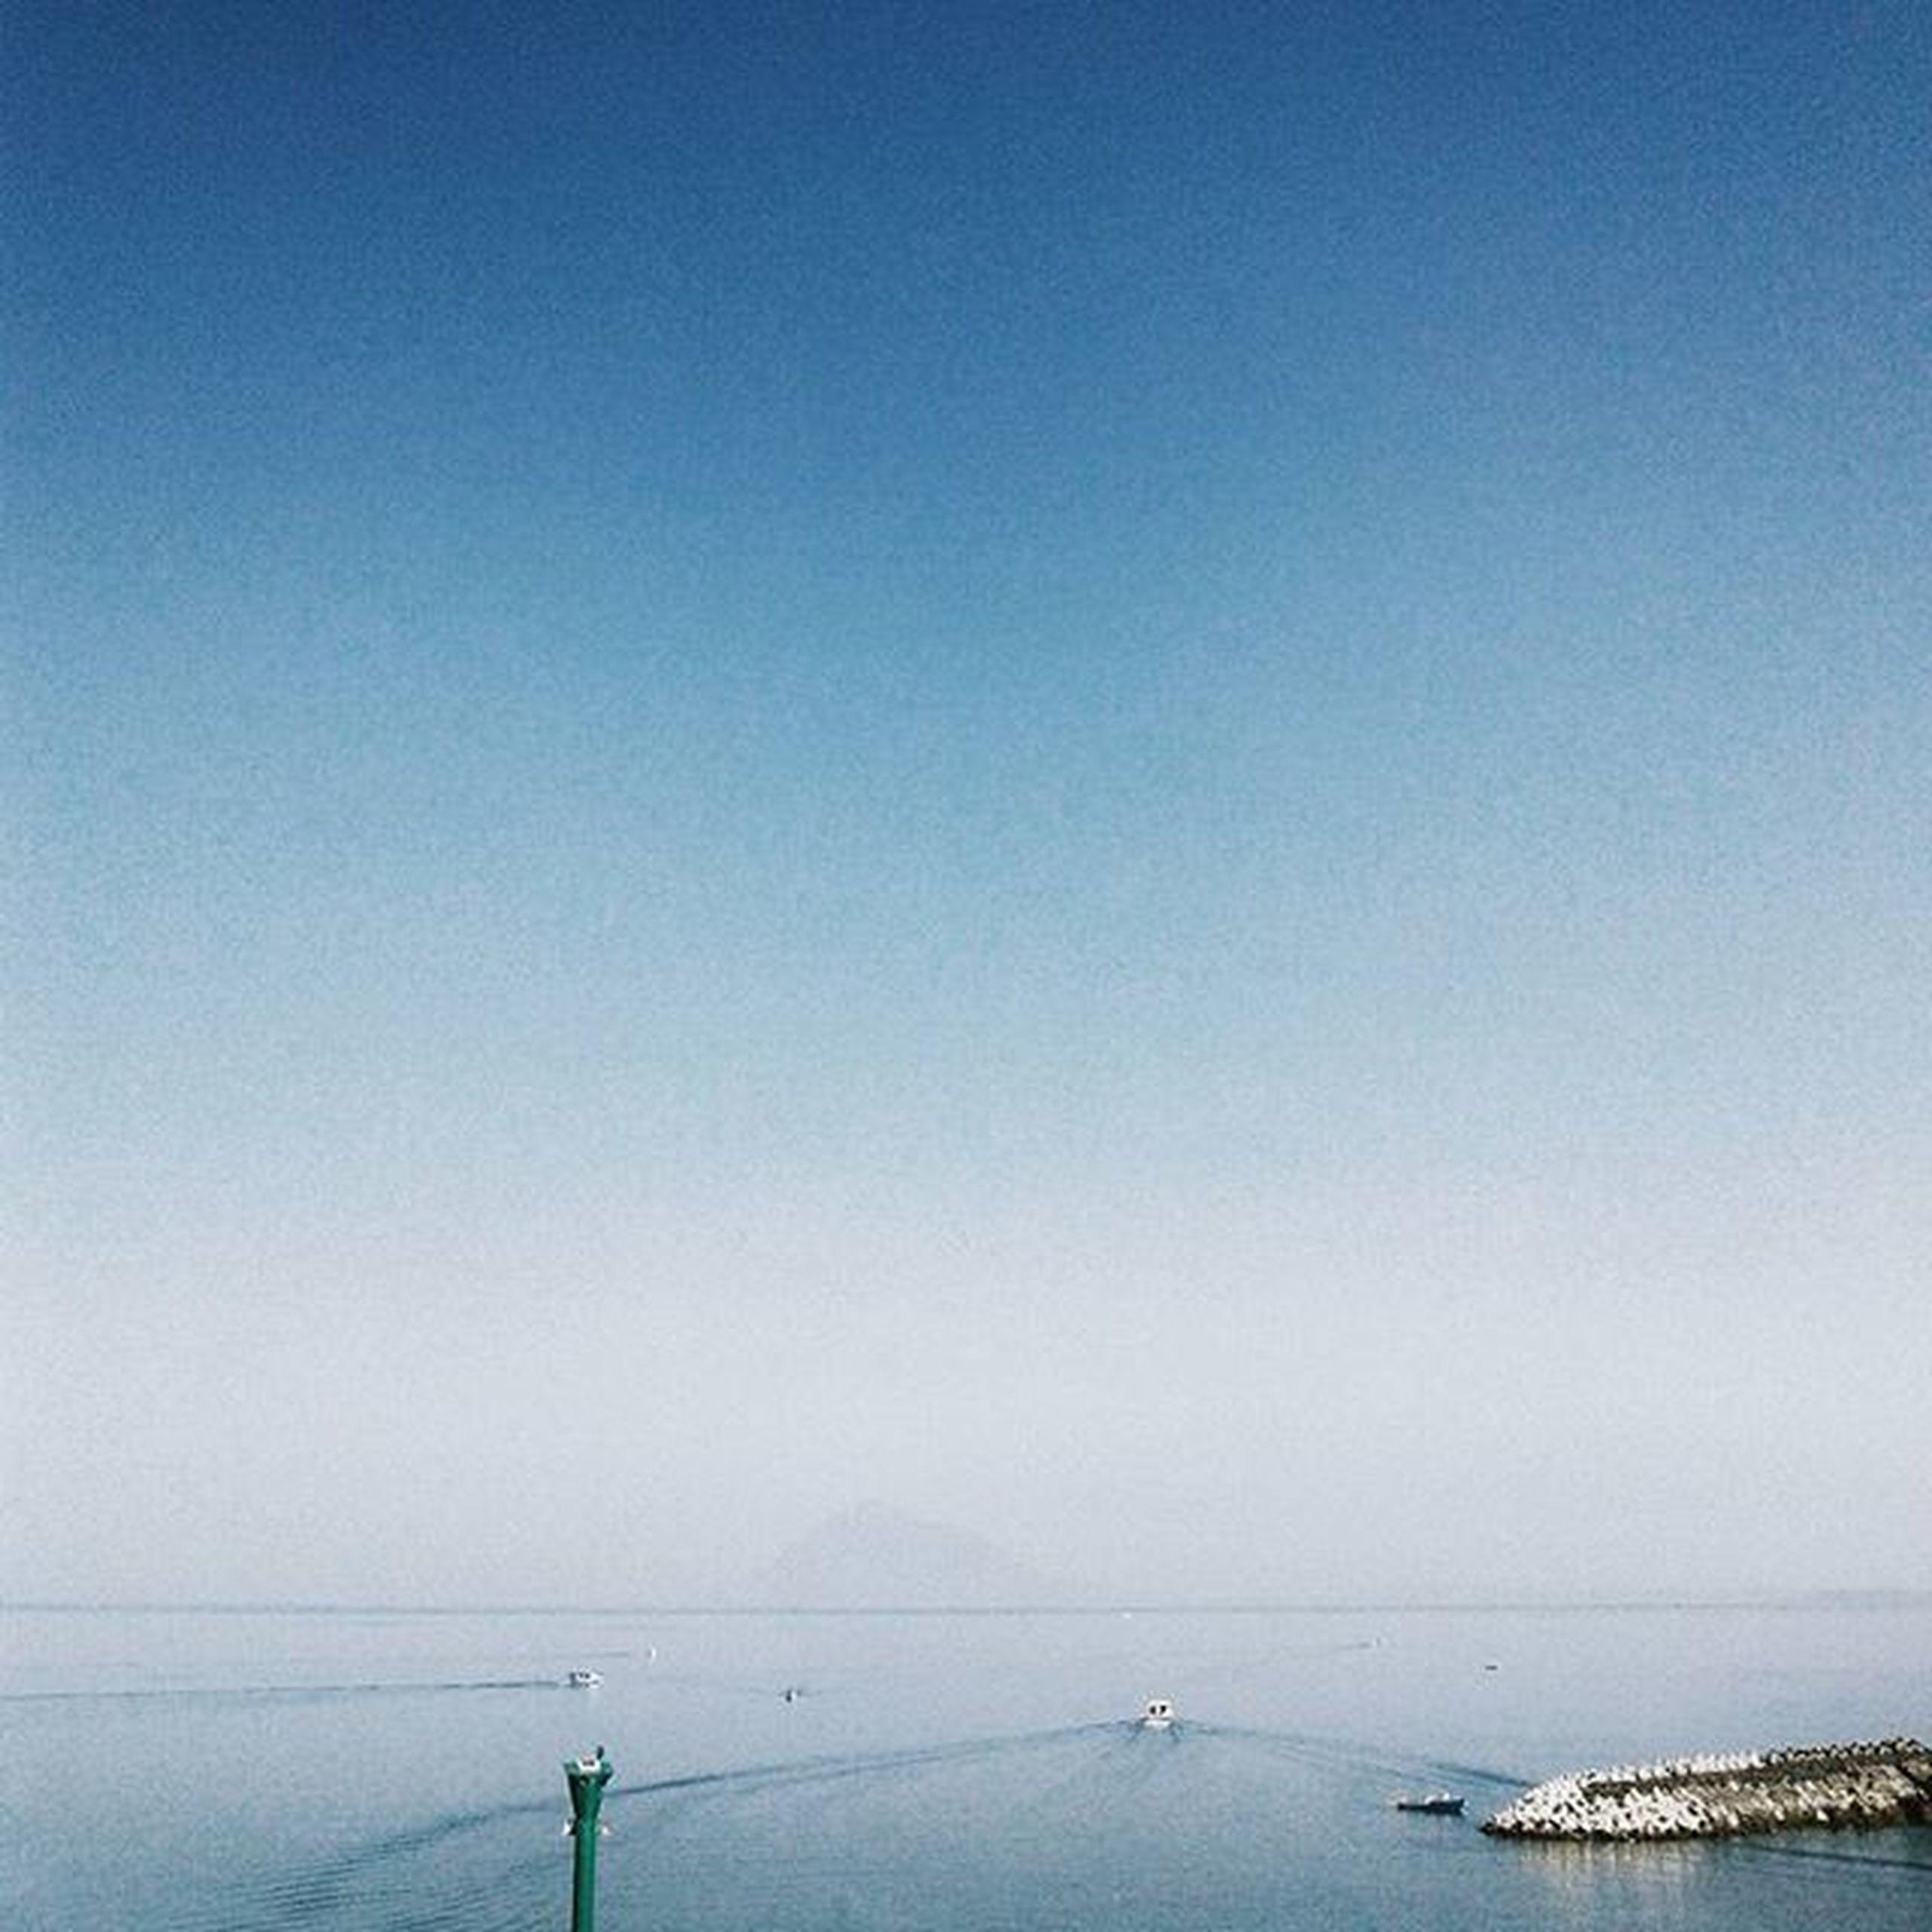 sea, water, horizon over water, copy space, clear sky, tranquility, tranquil scene, scenics, blue, beauty in nature, beach, nature, transportation, nautical vessel, idyllic, shore, outdoors, coastline, calm, day